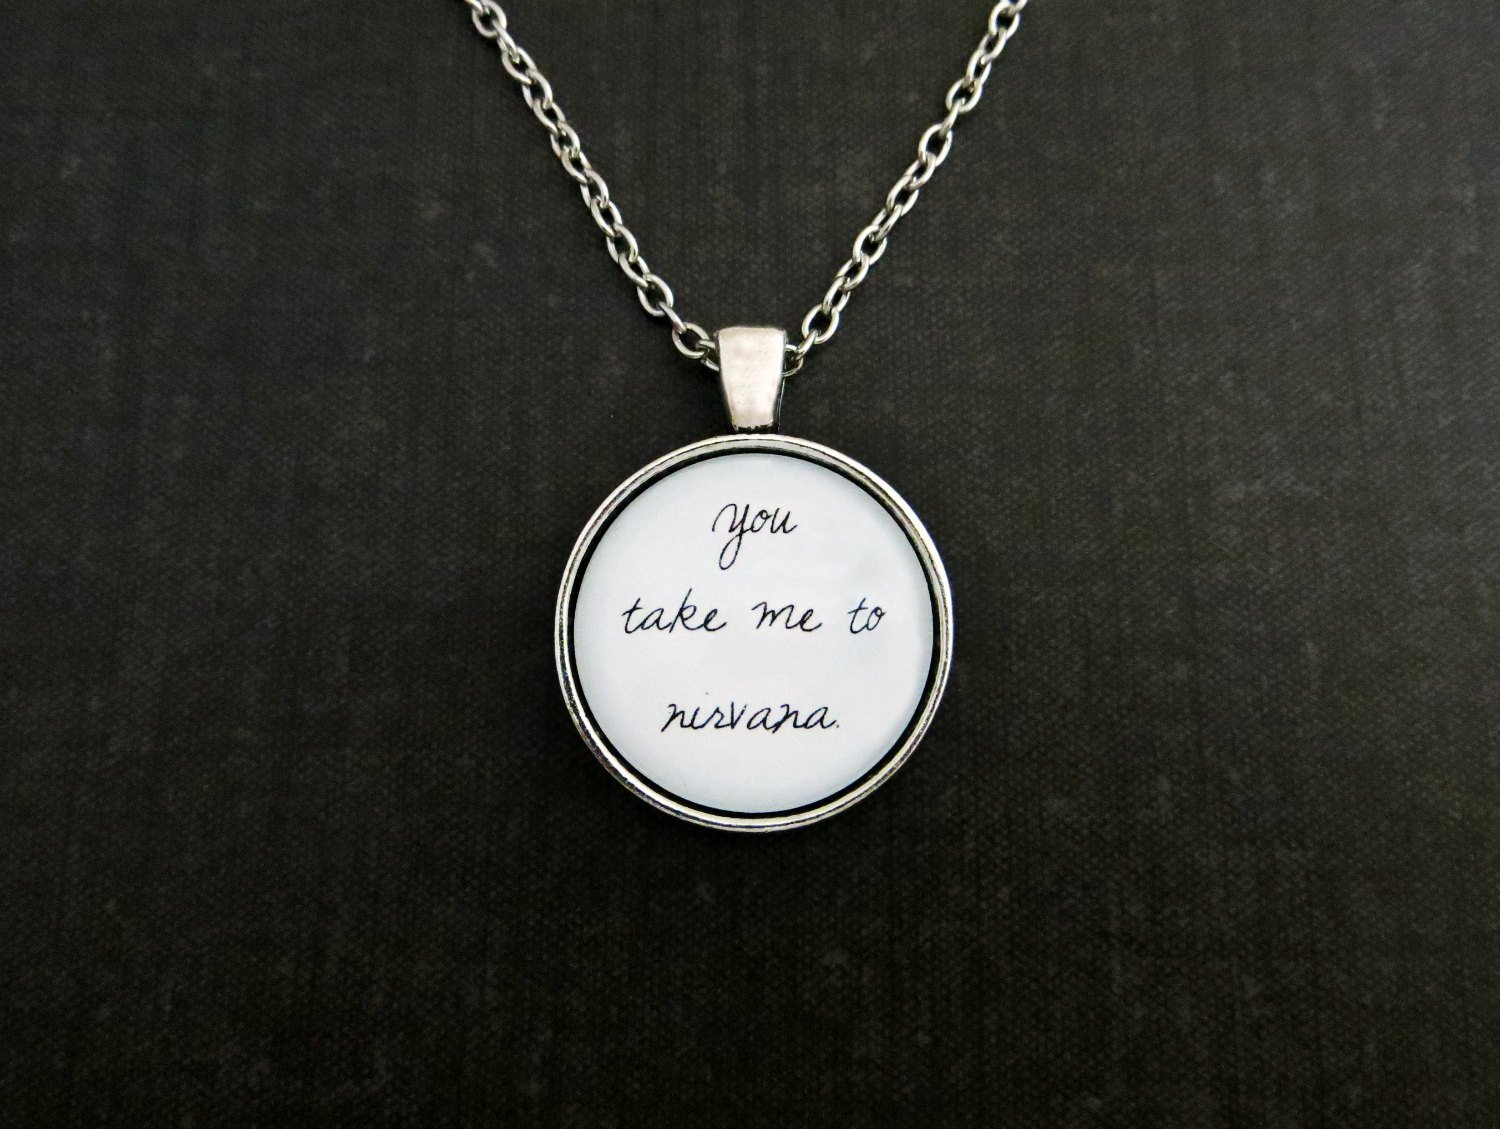 Sam Smith Nirvana Inspired Lyrical Quote Pendant Necklace (Handcrafted, 18 inches)